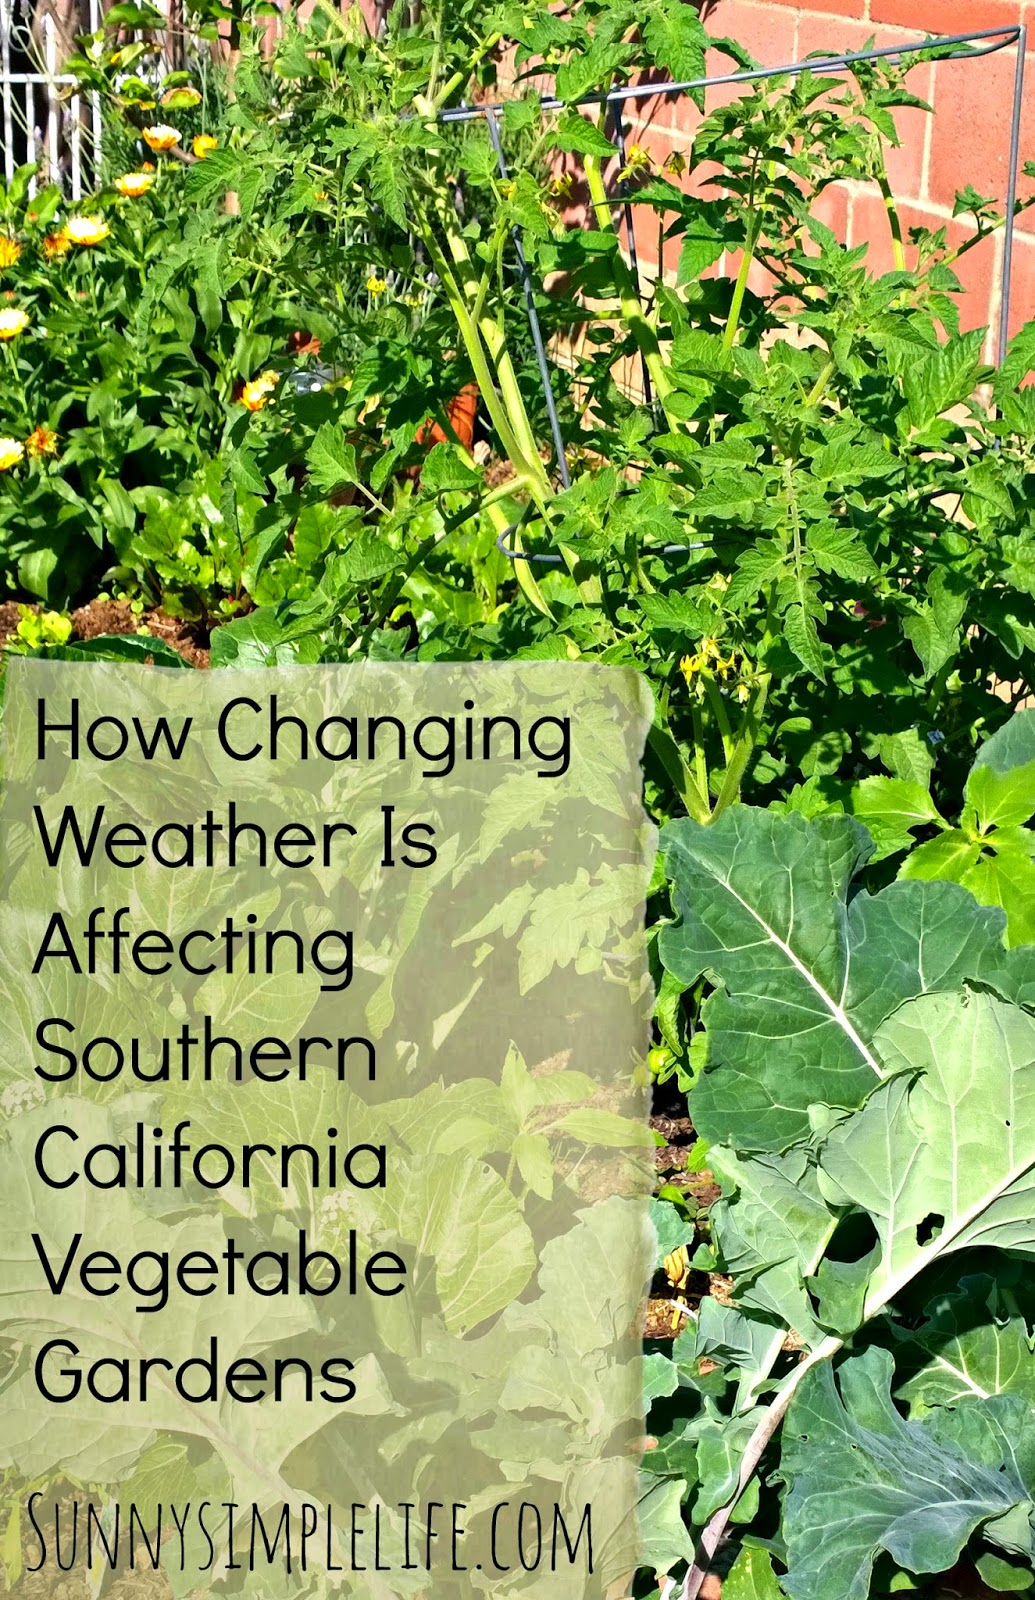 How Changing Weather Is Affecting Southern California Vegetable Gardens